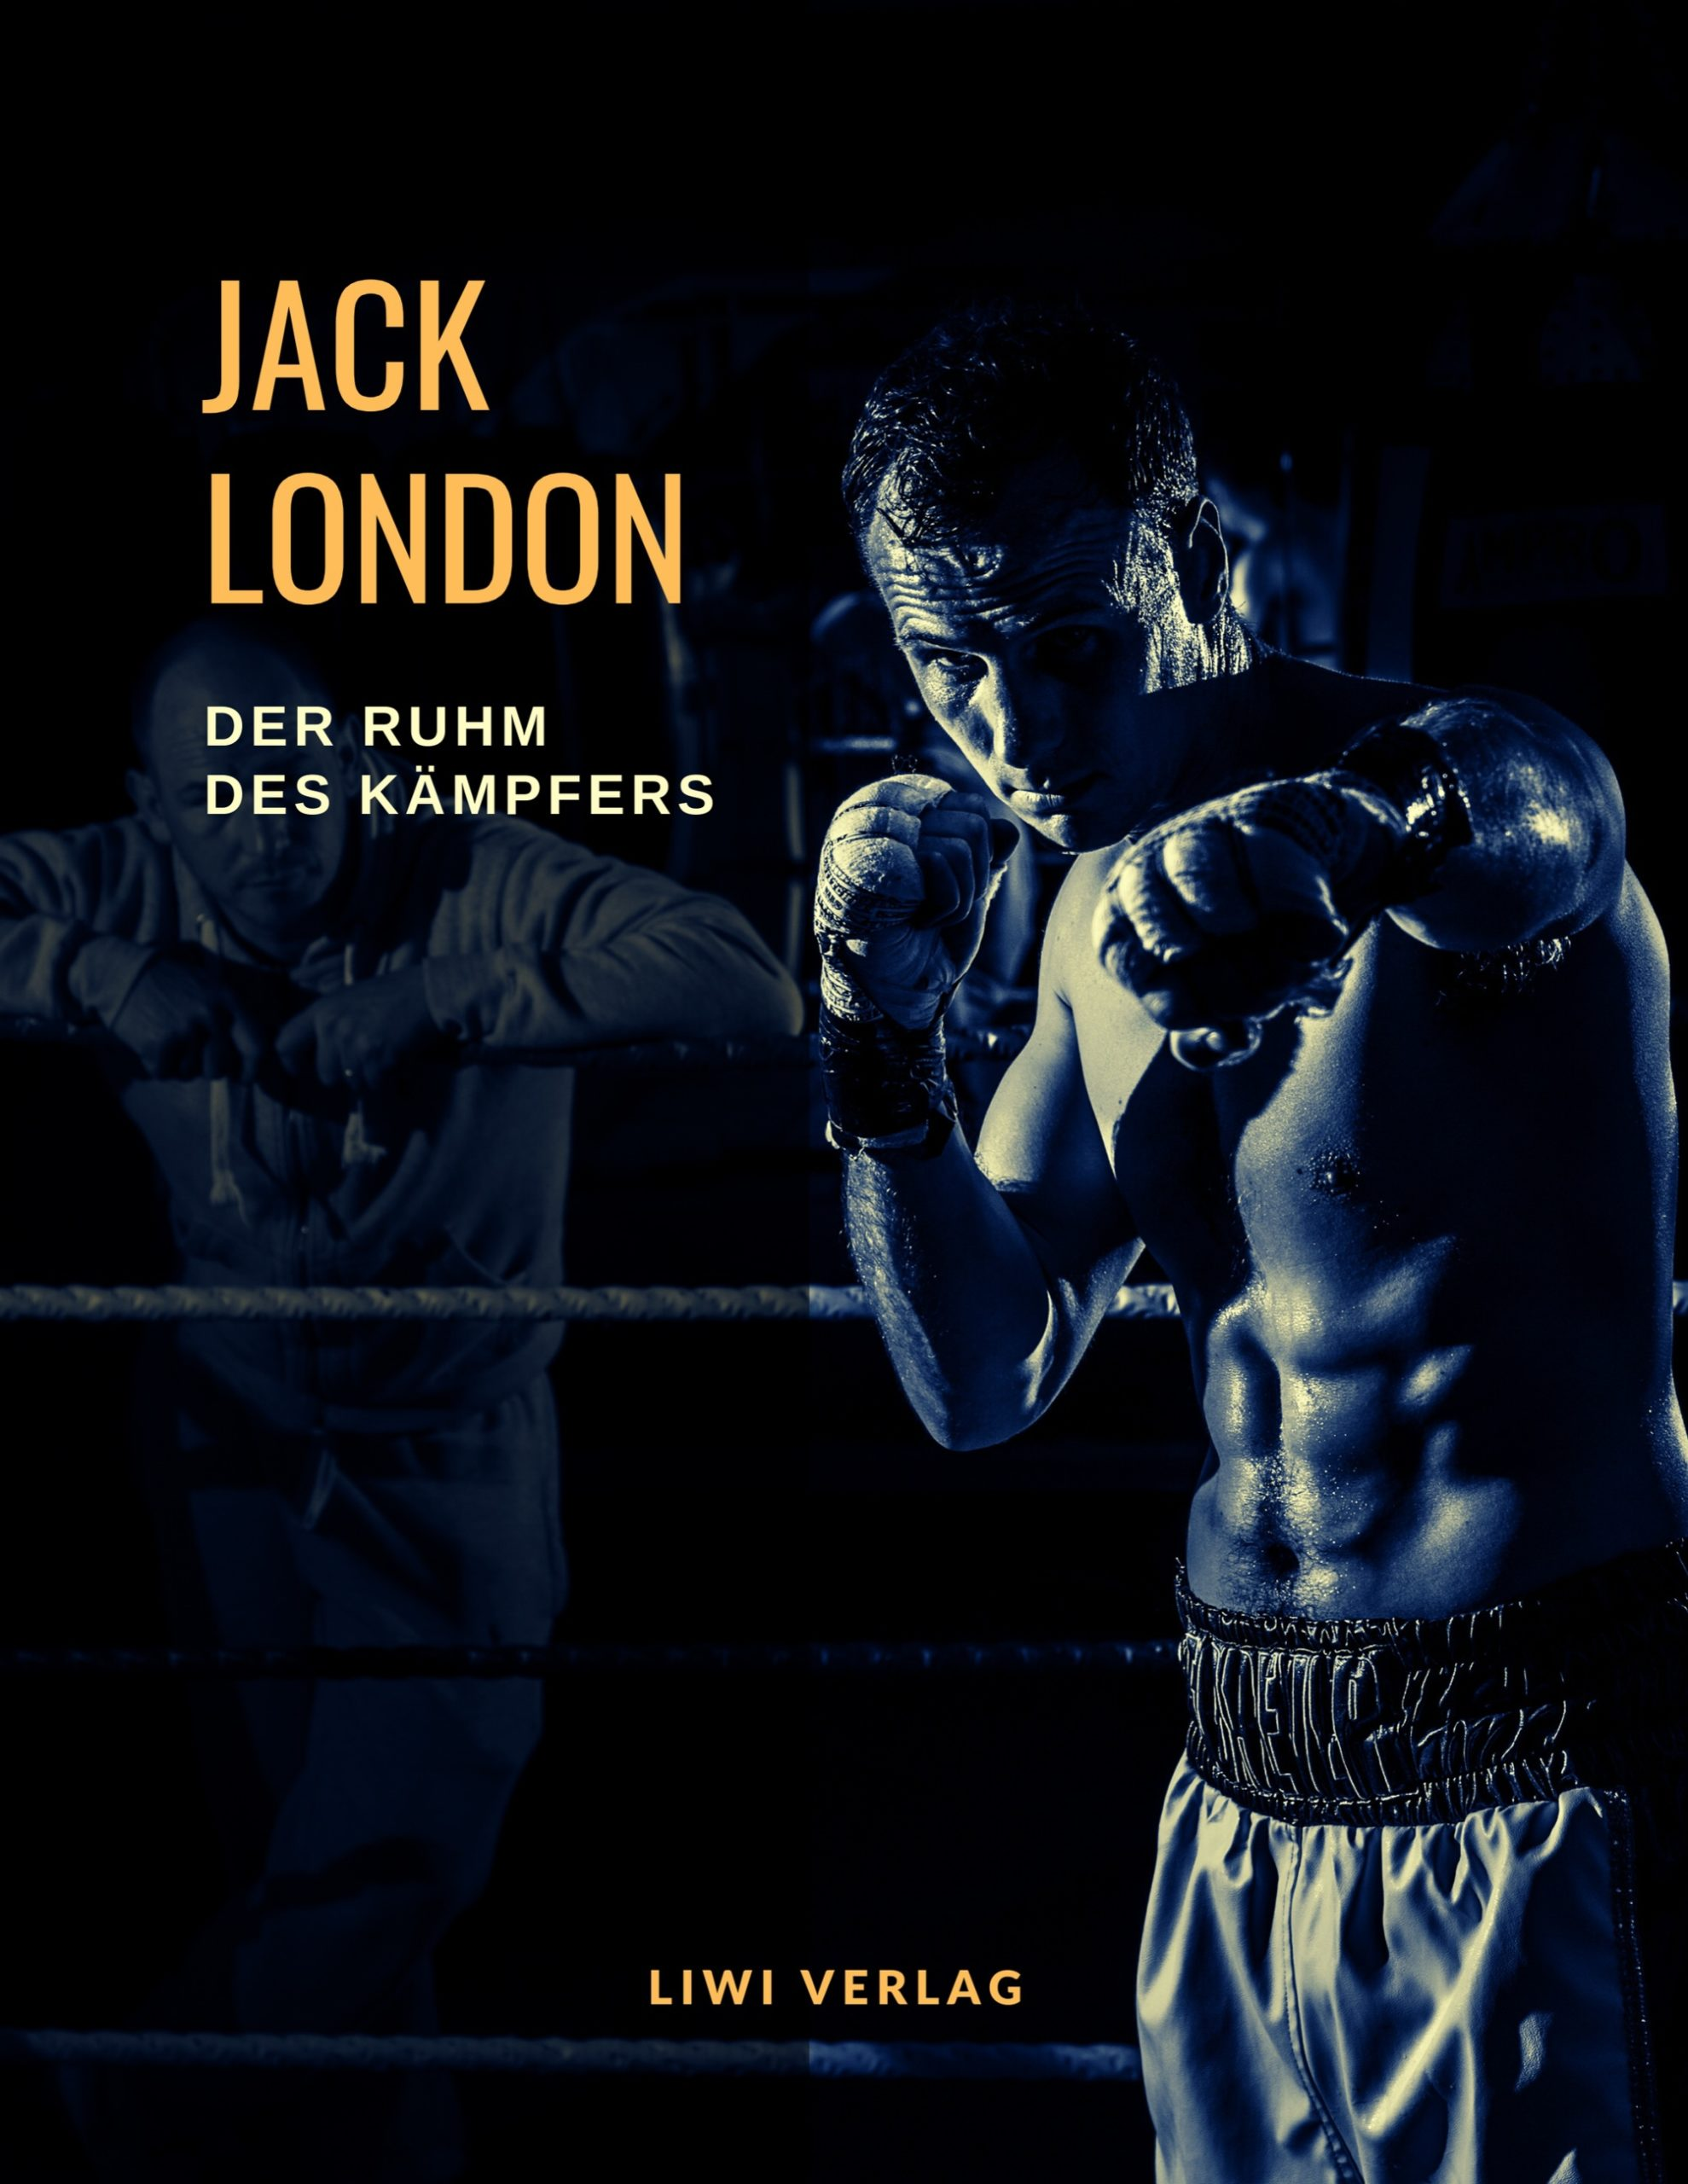 Jack London - Der Ruhm des Kämpfers